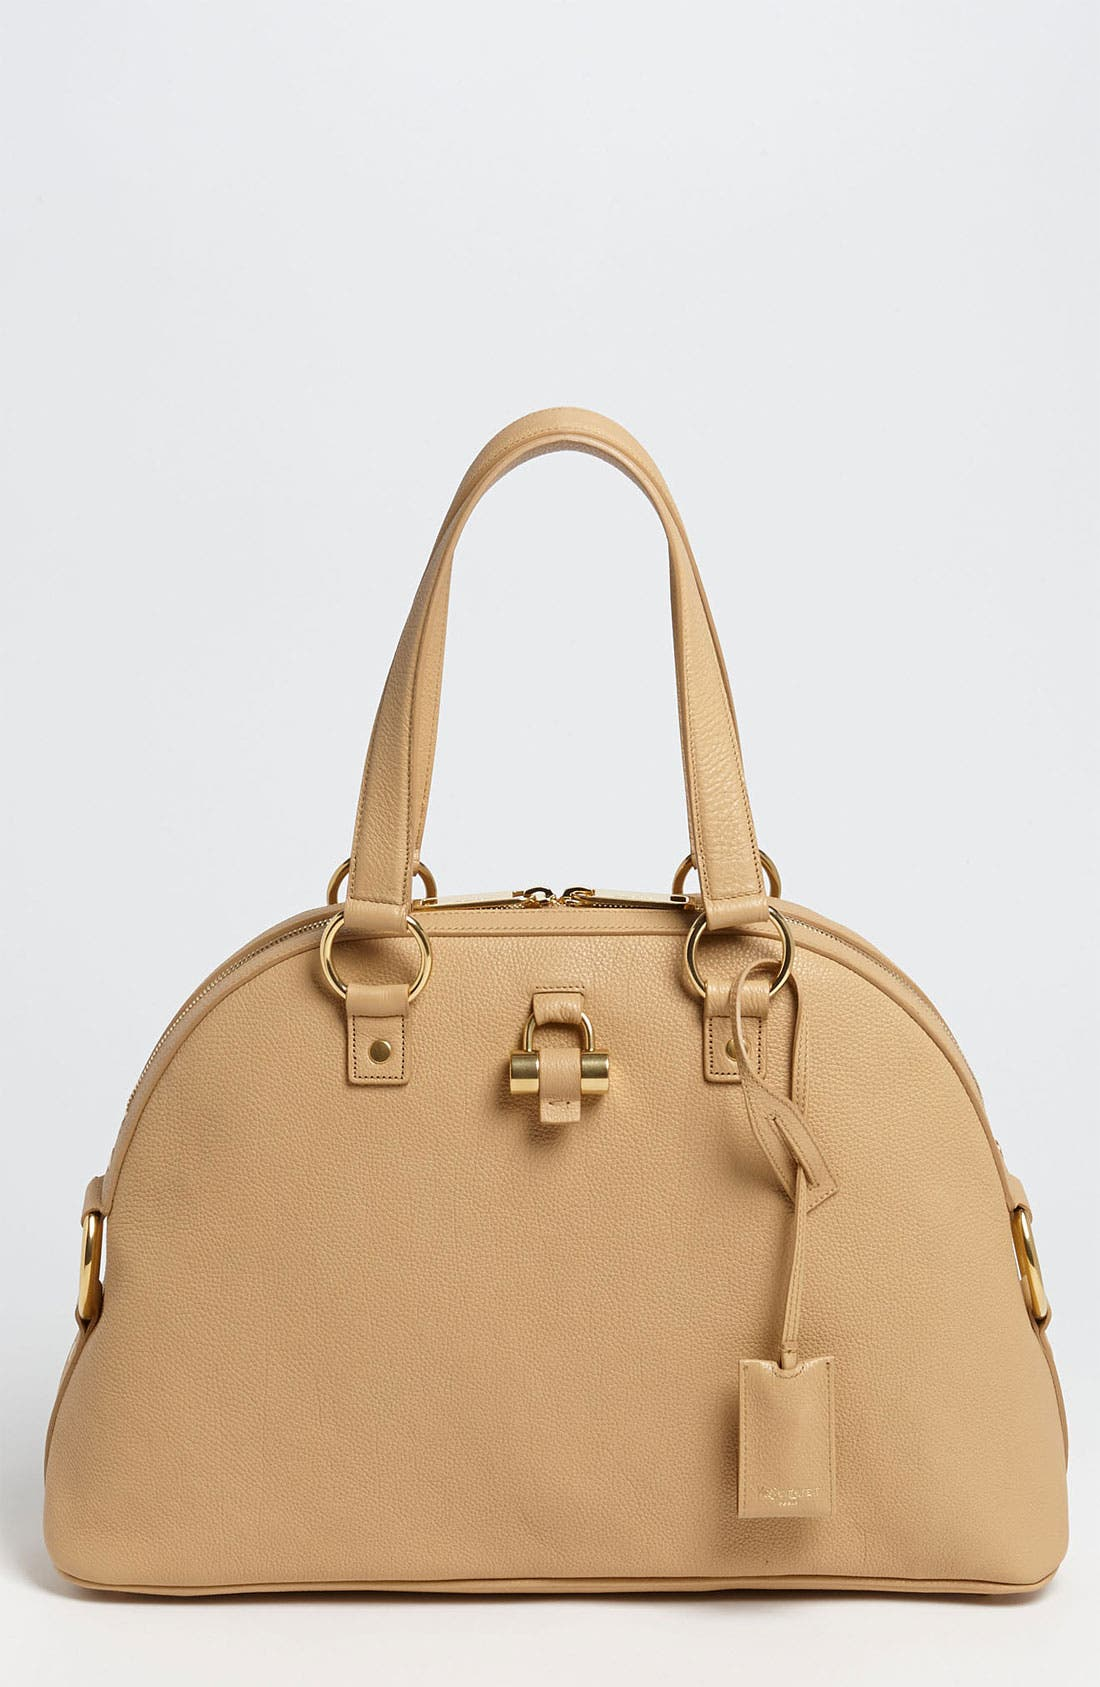 Alternate Image 1 Selected - Saint Laurent 'Muse - Medium' Leather Dome Satchel